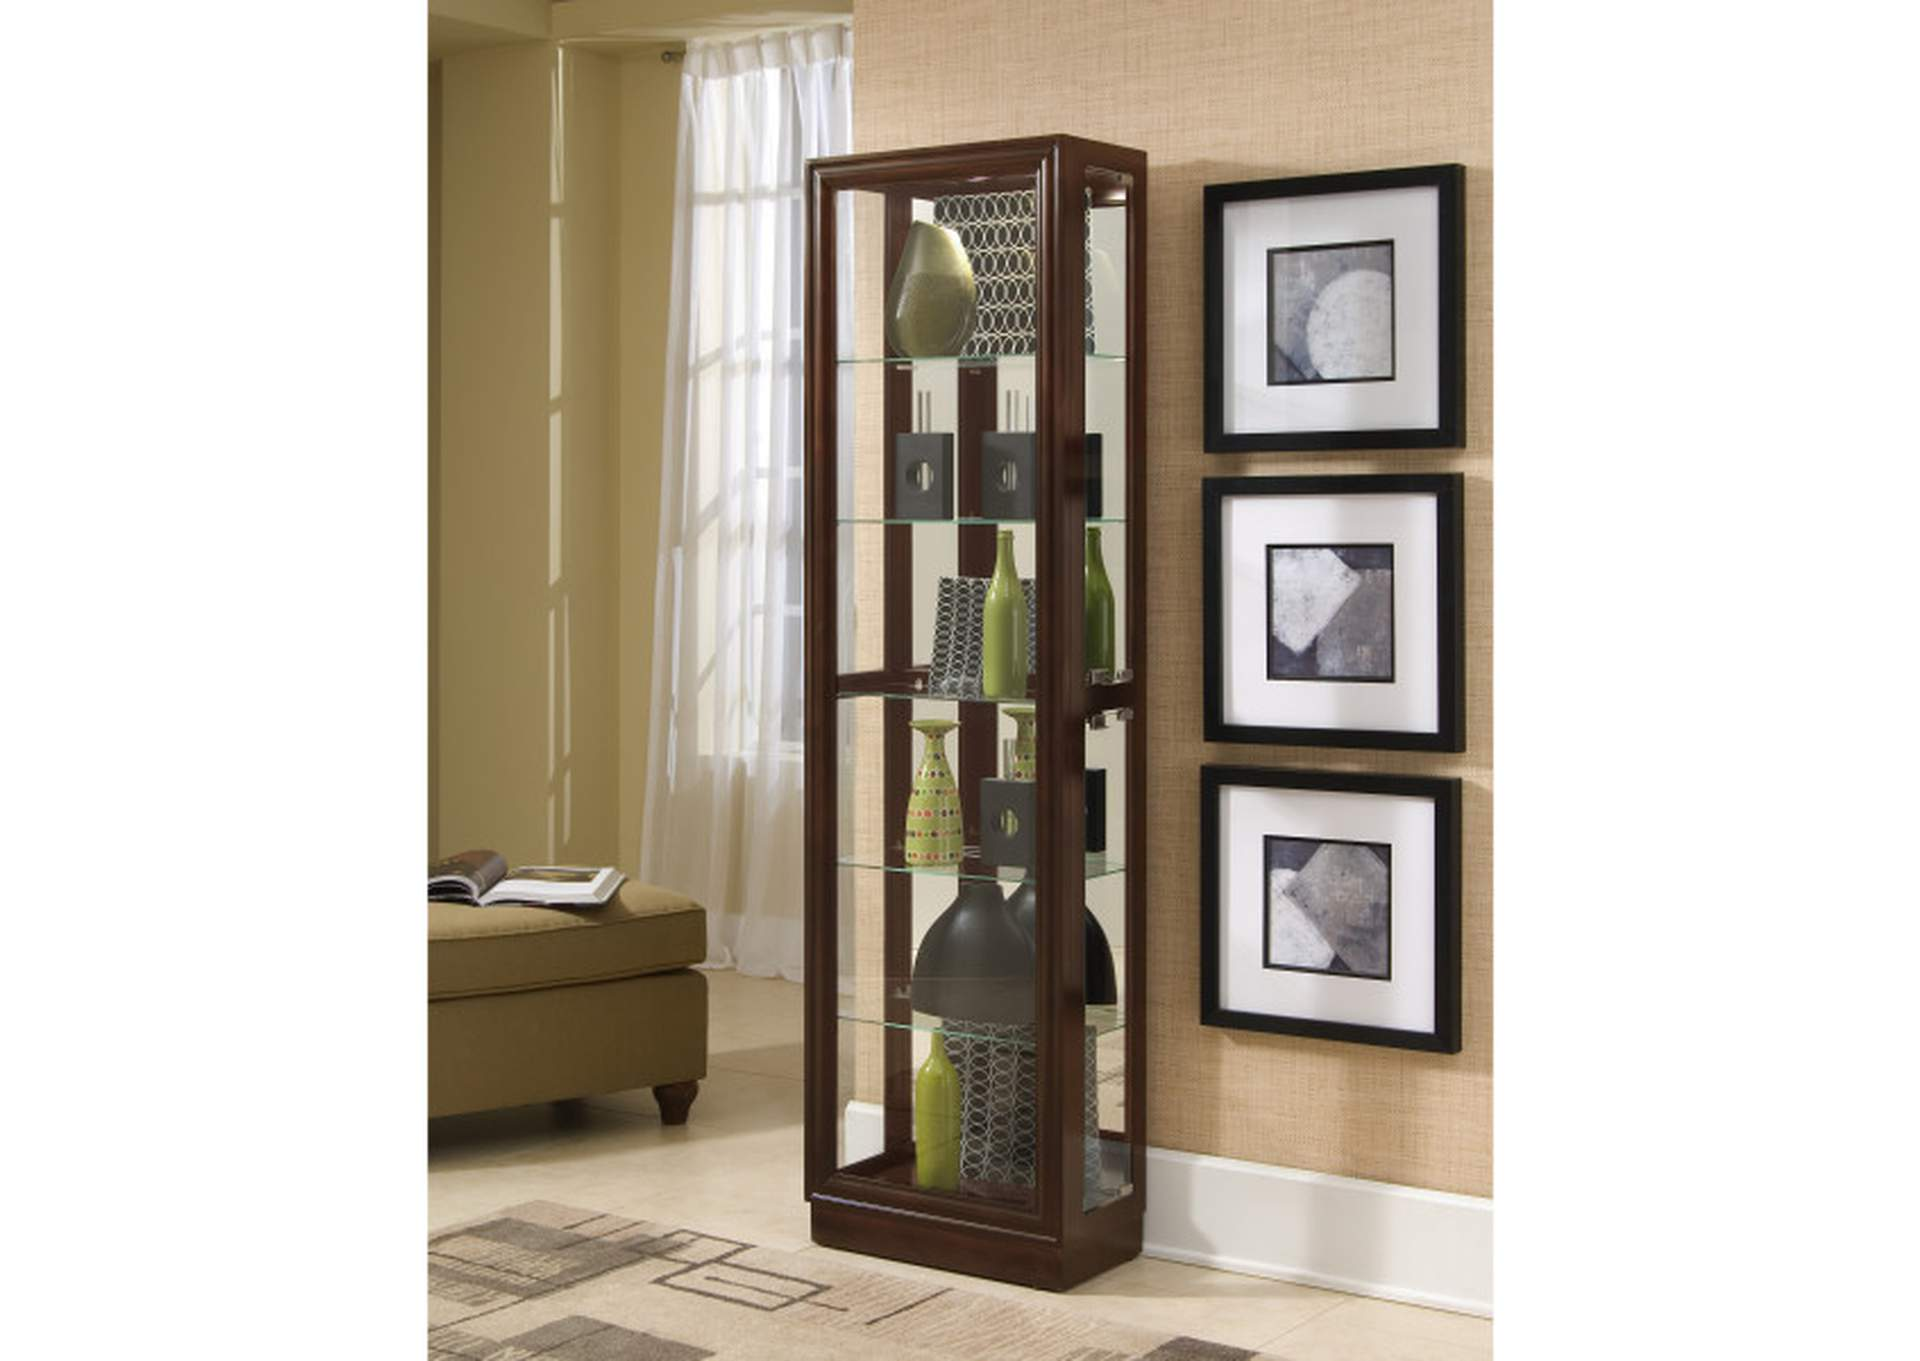 Tall Traditional 5 Shelf Curio Cabinet in Cherry Brown,Pulaski Furniture